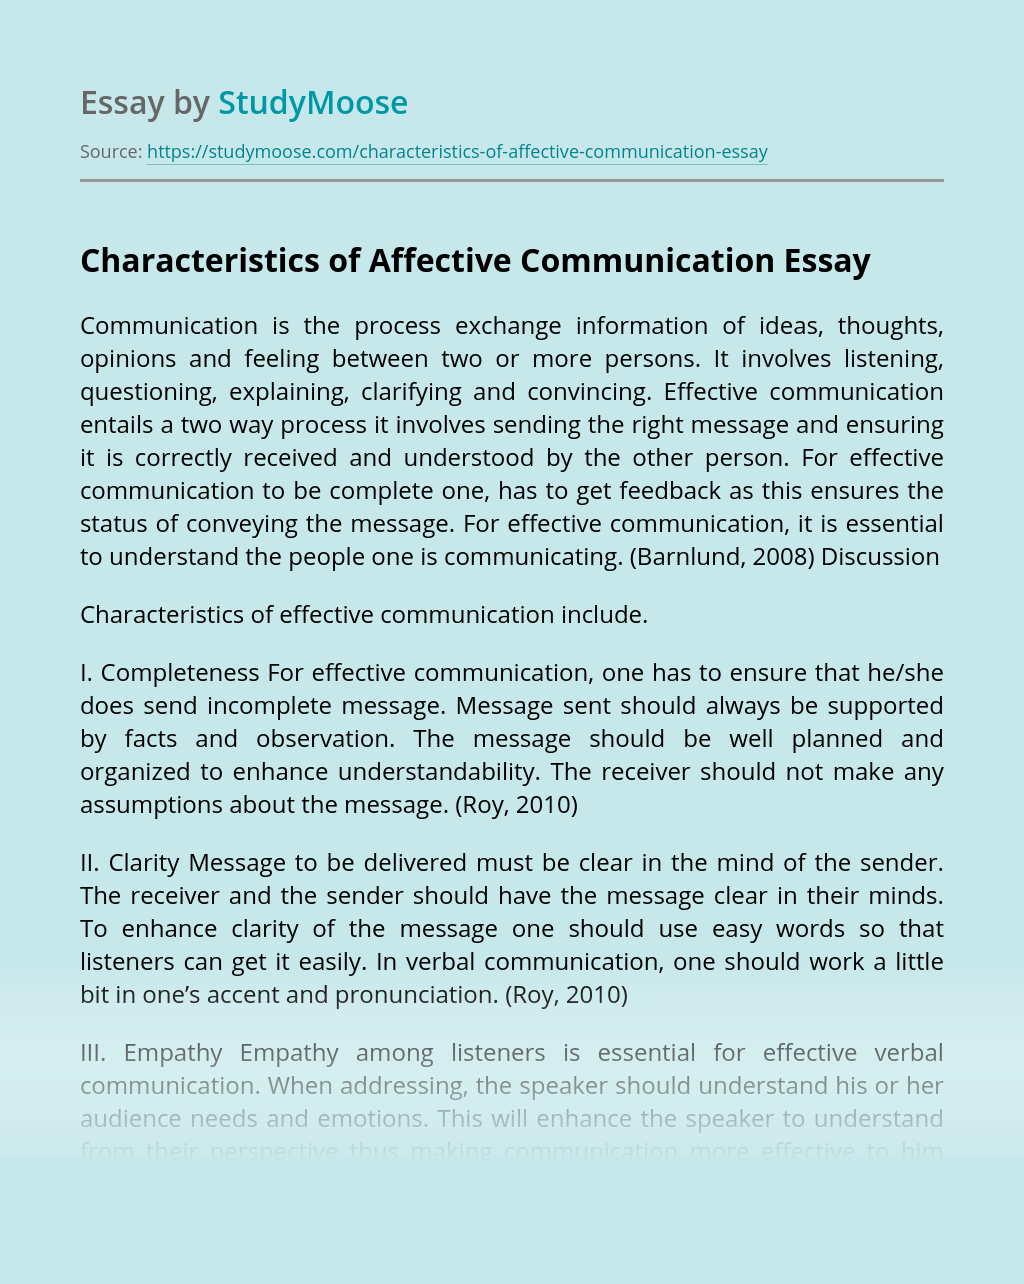 Characteristics of Affective Communication